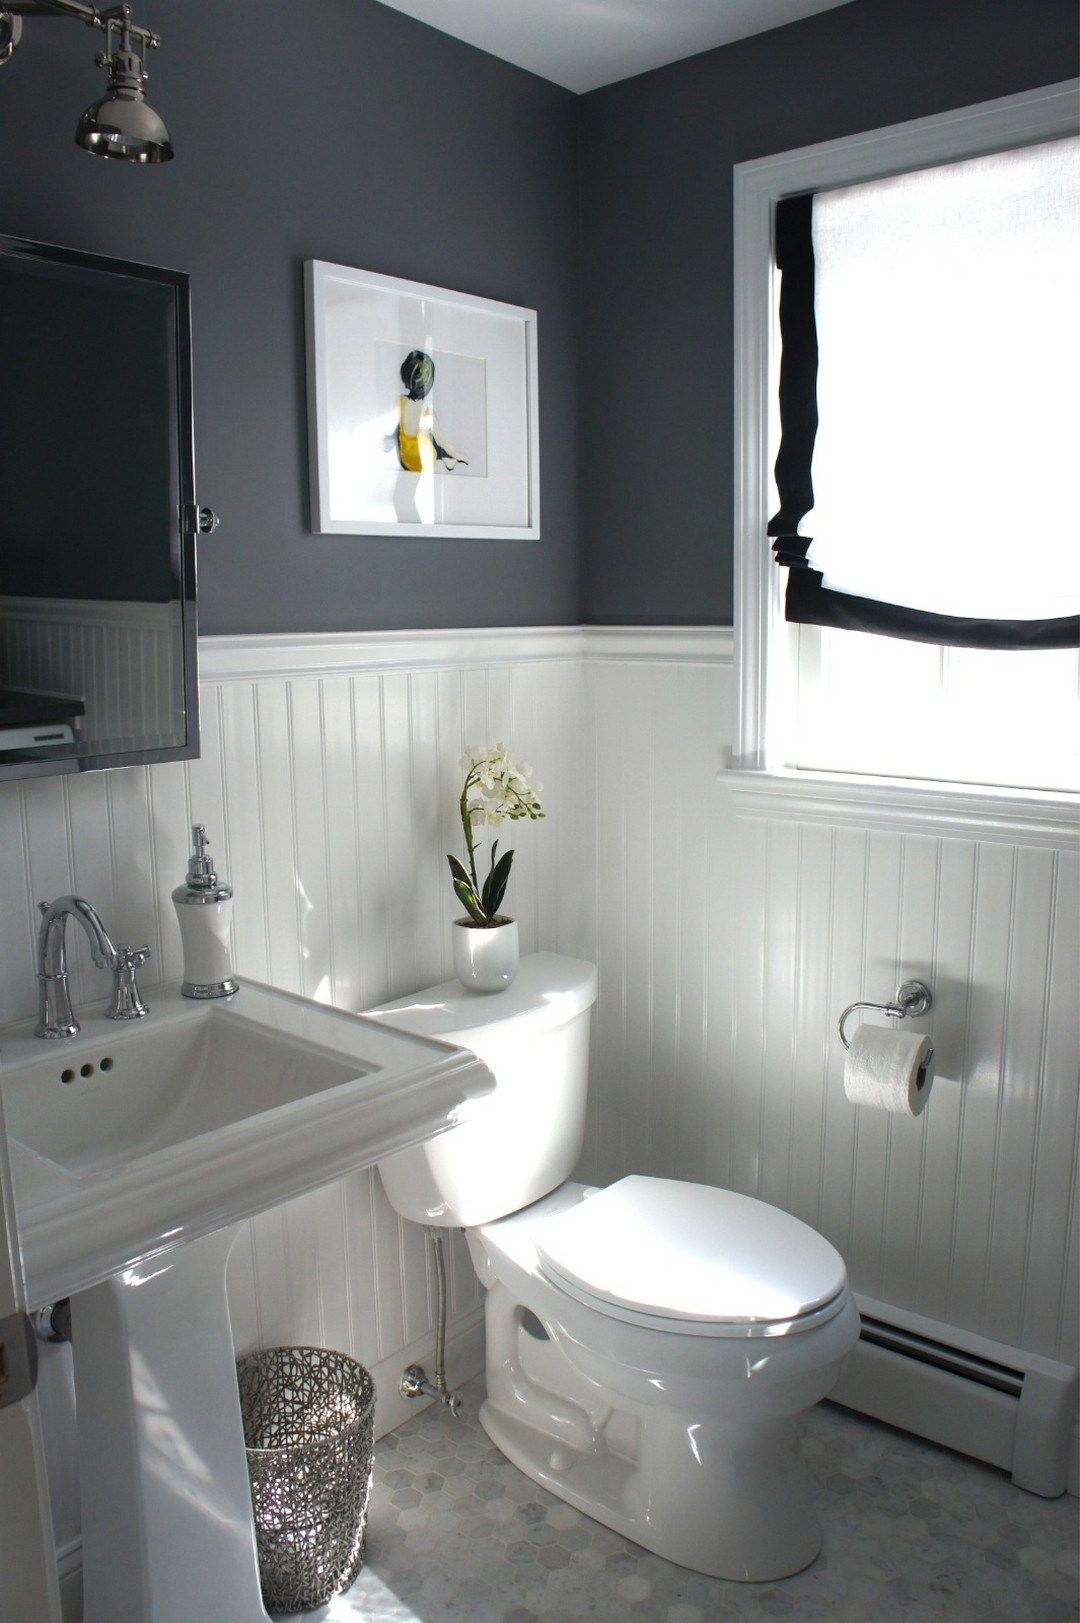 99 small master bathroom makeover ideas on a budget 48 for Small restroom